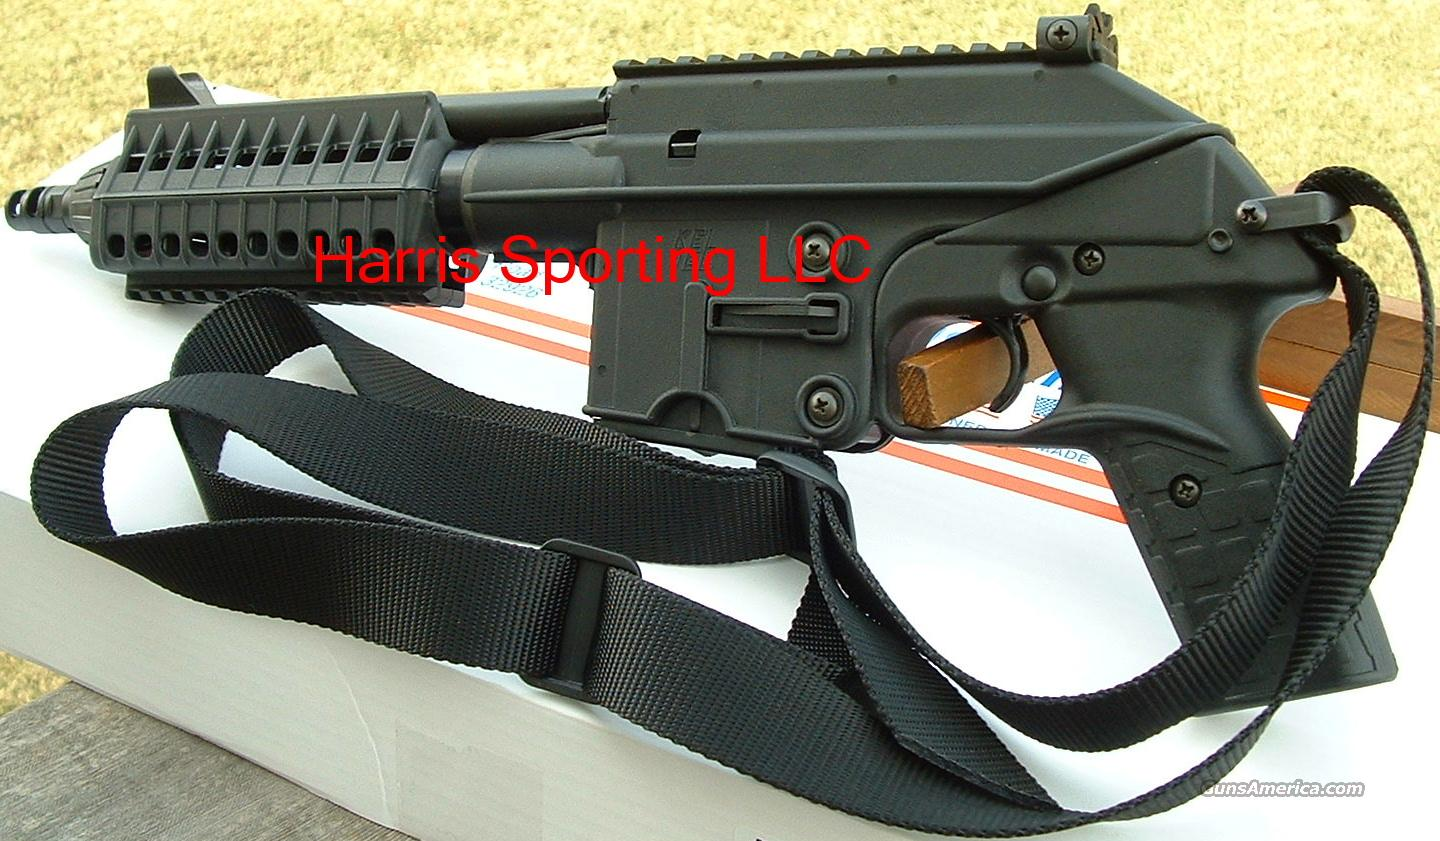 KEL-TEC PLR-16 pistol Modified  223 Rem. / 5.56 NATO w/ Accessories  NEW!     PLR16  Guns > Pistols > Kel-Tec Pistols > .223 Type